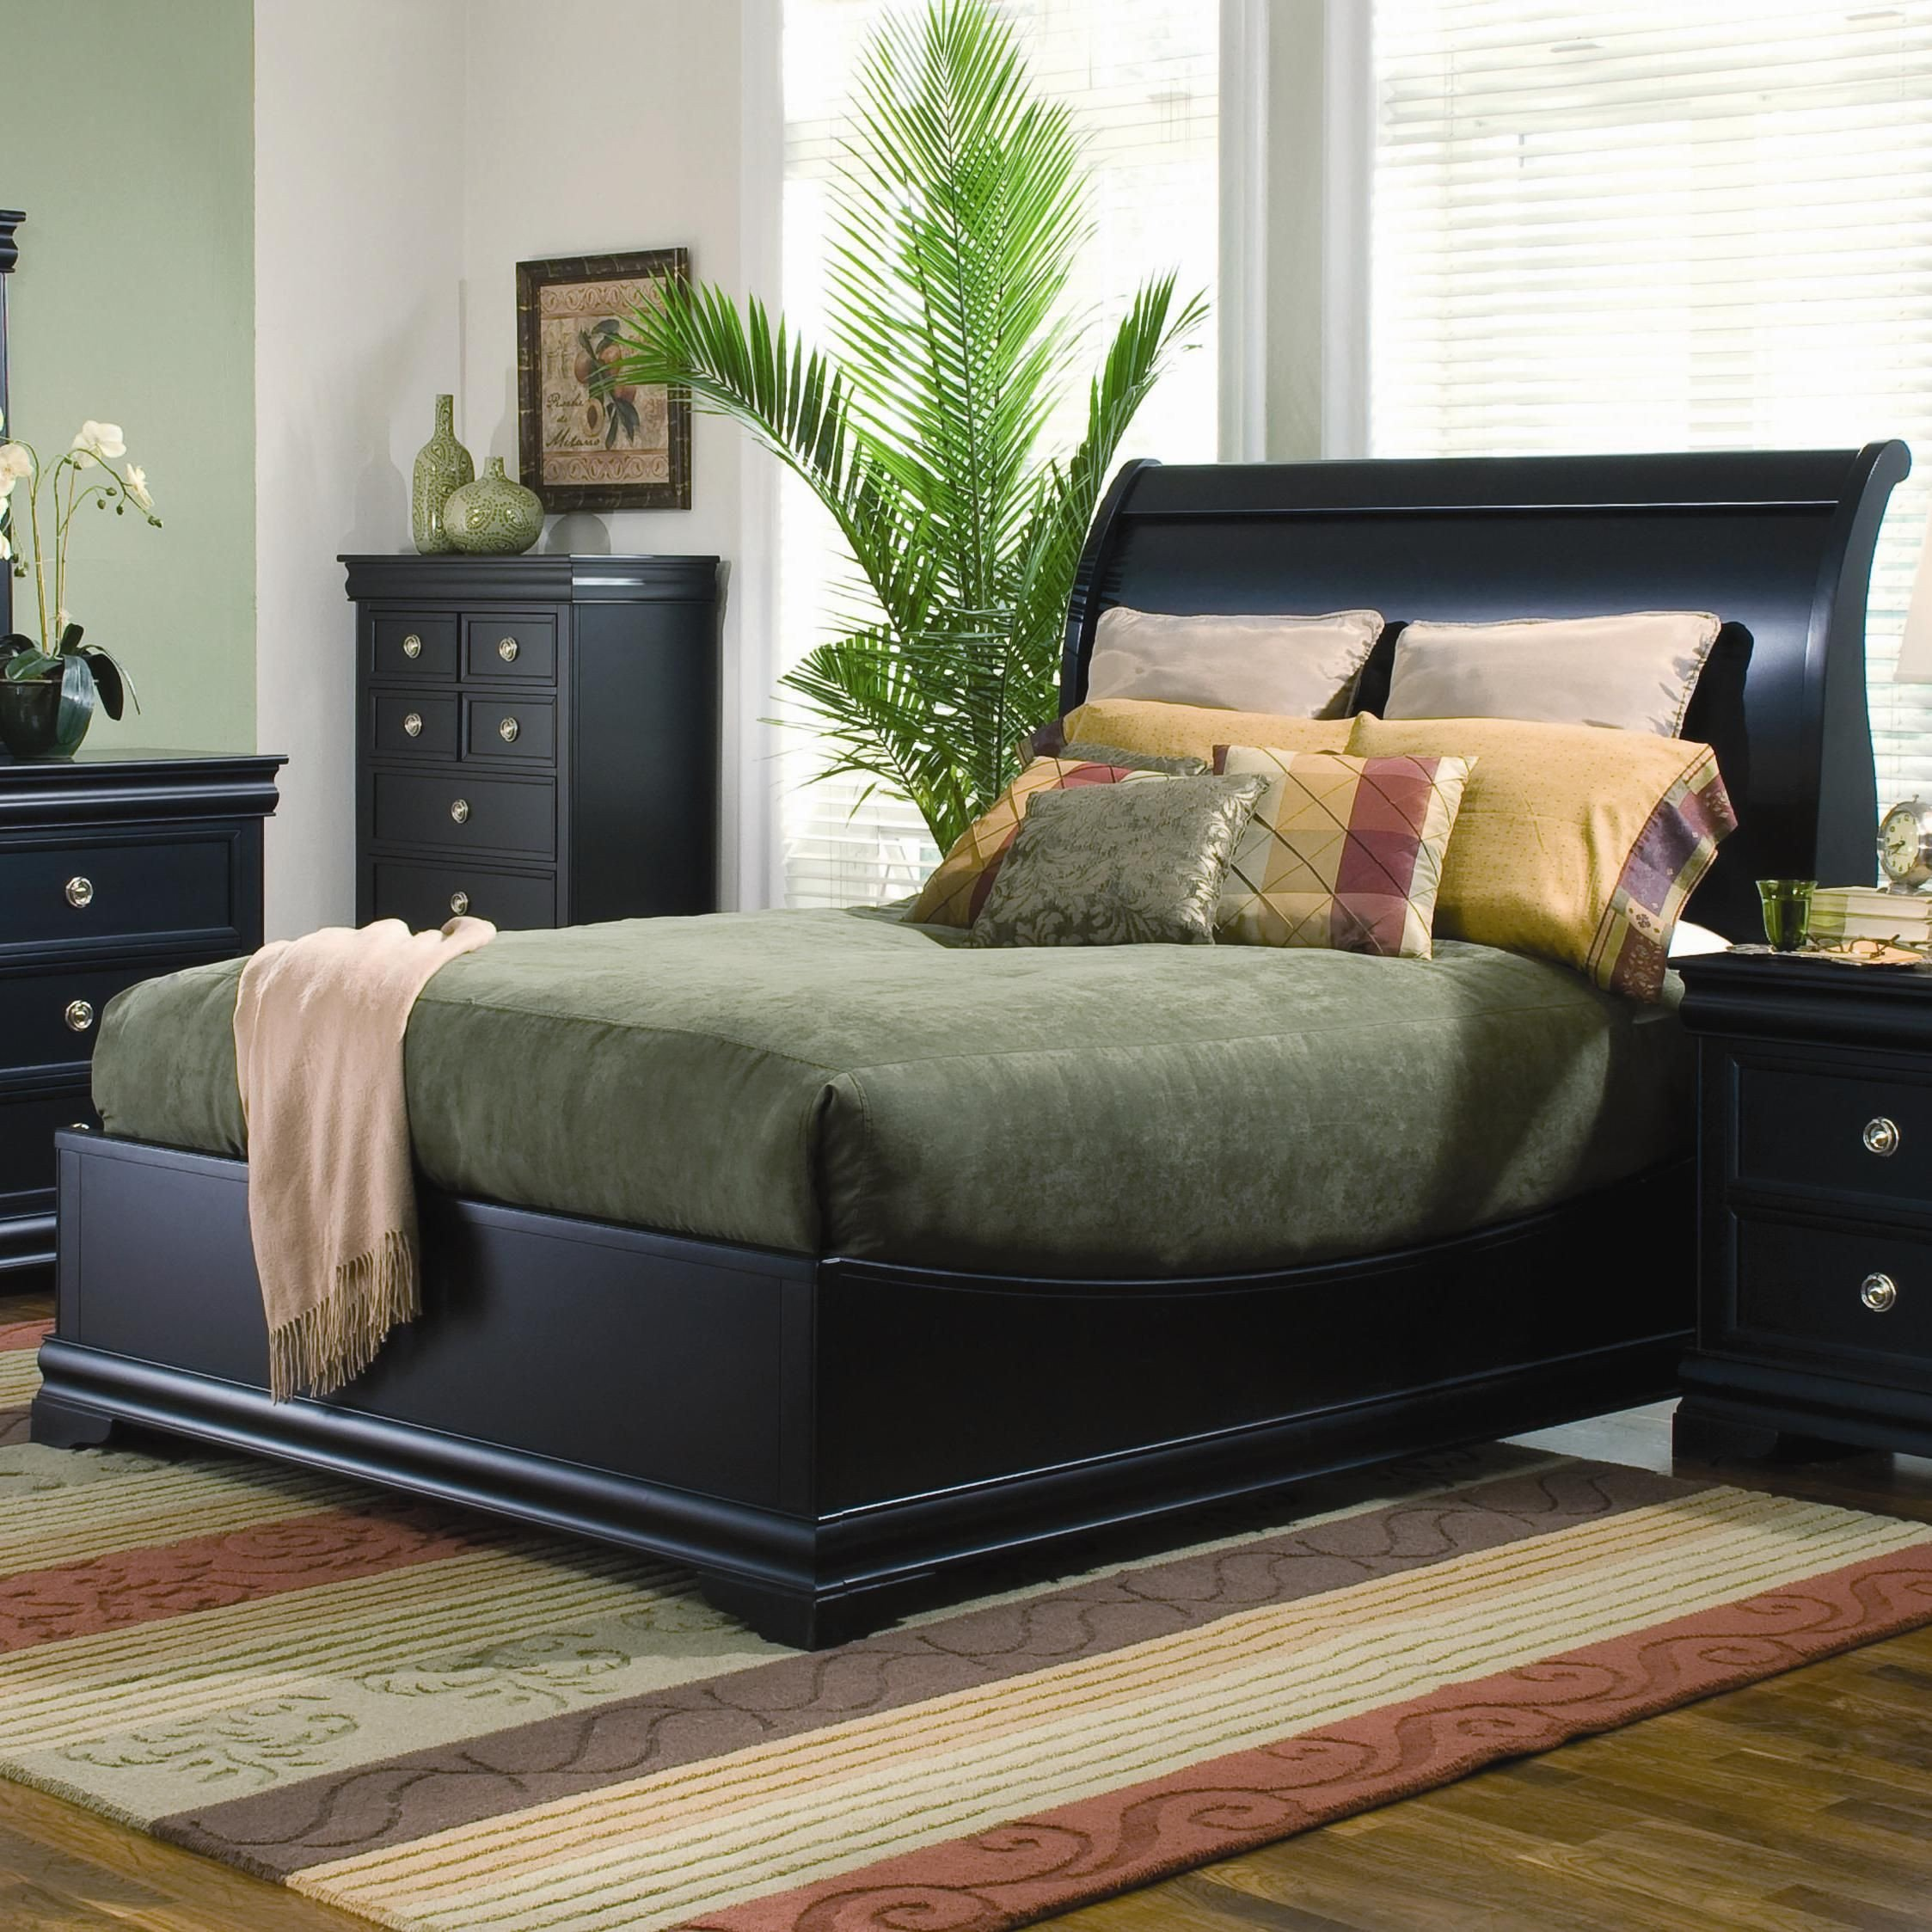 Low Profile Bedroom Set New Swept Back with Low Profile Footboard An Updated Sleigh Bed